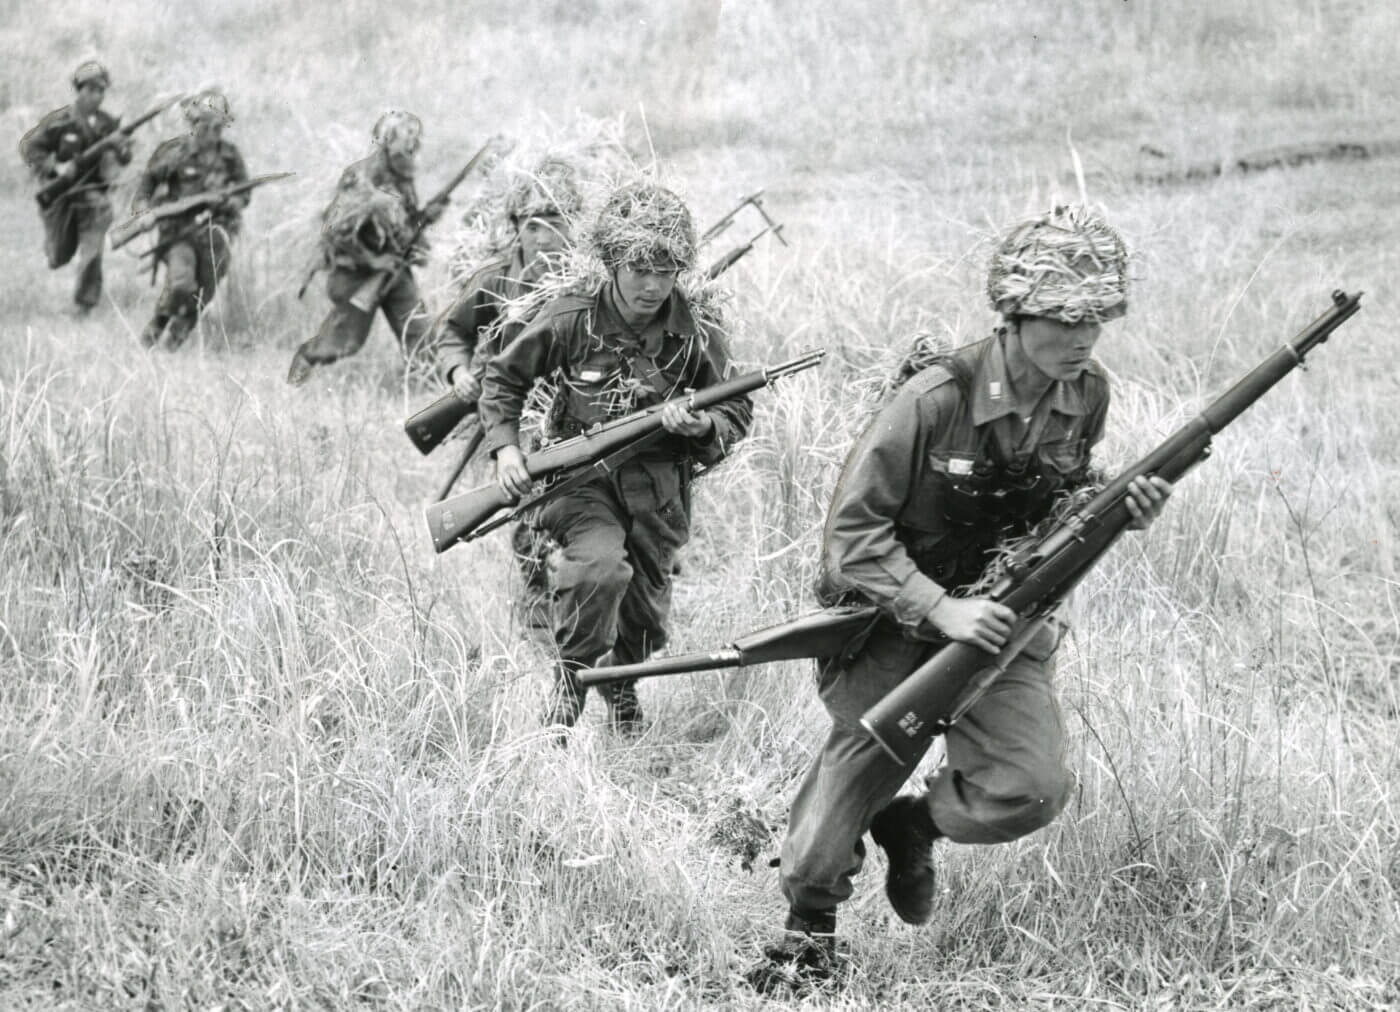 Japanese Self-Defense Forces armed with M1 Garand rifles